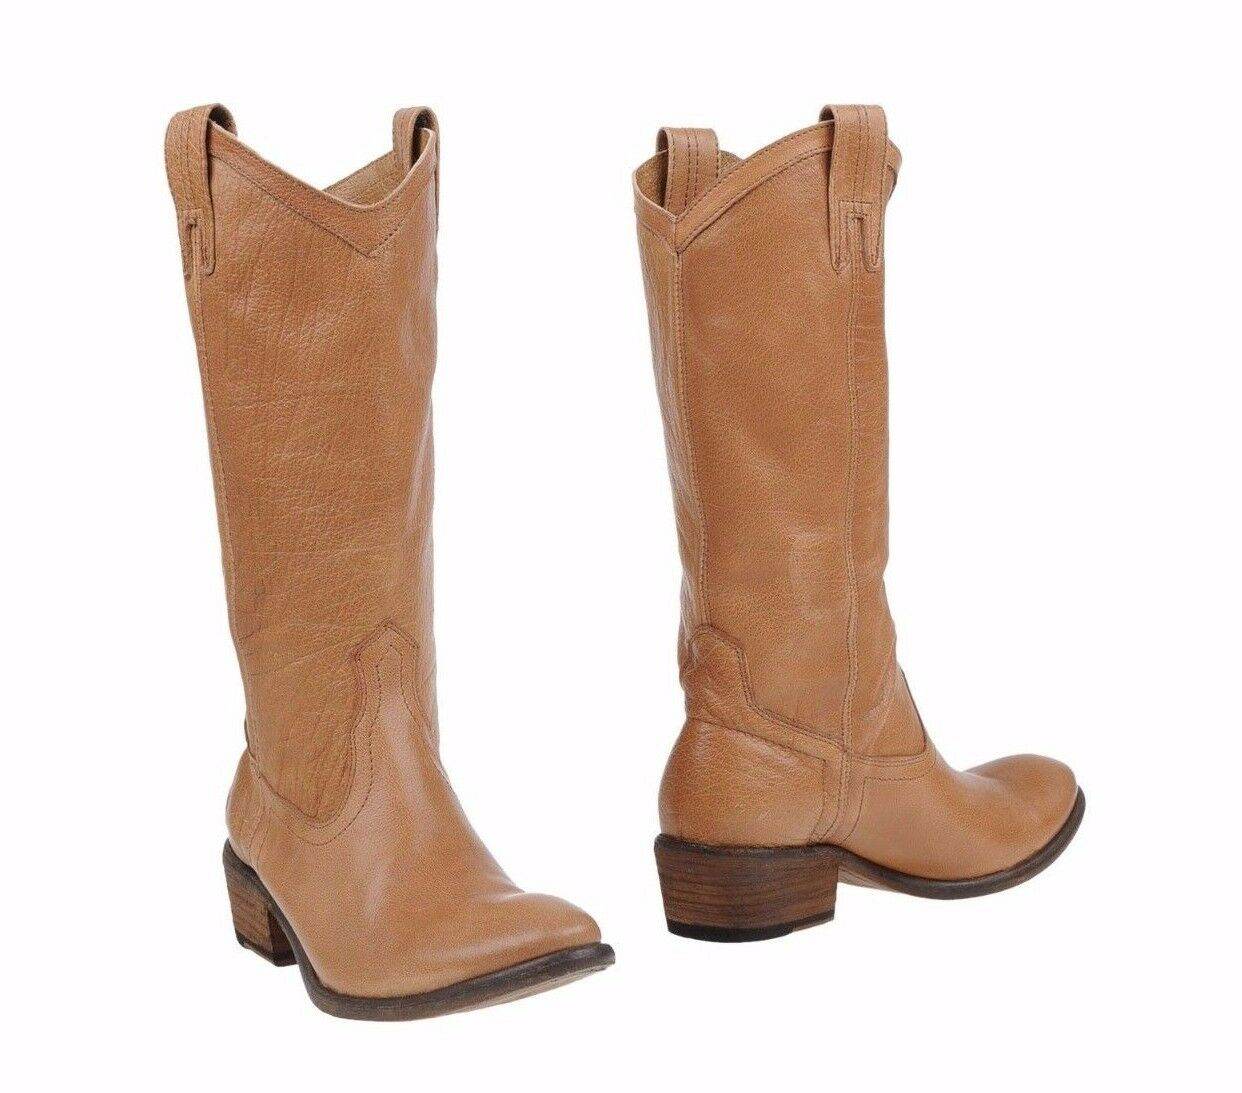 FRYE SHOES CARSON PULL ON BOOTS BOOTS ON TAN LIGHT BROWN LEATHER 77687 7 $378 NEW NIB 02e2bd